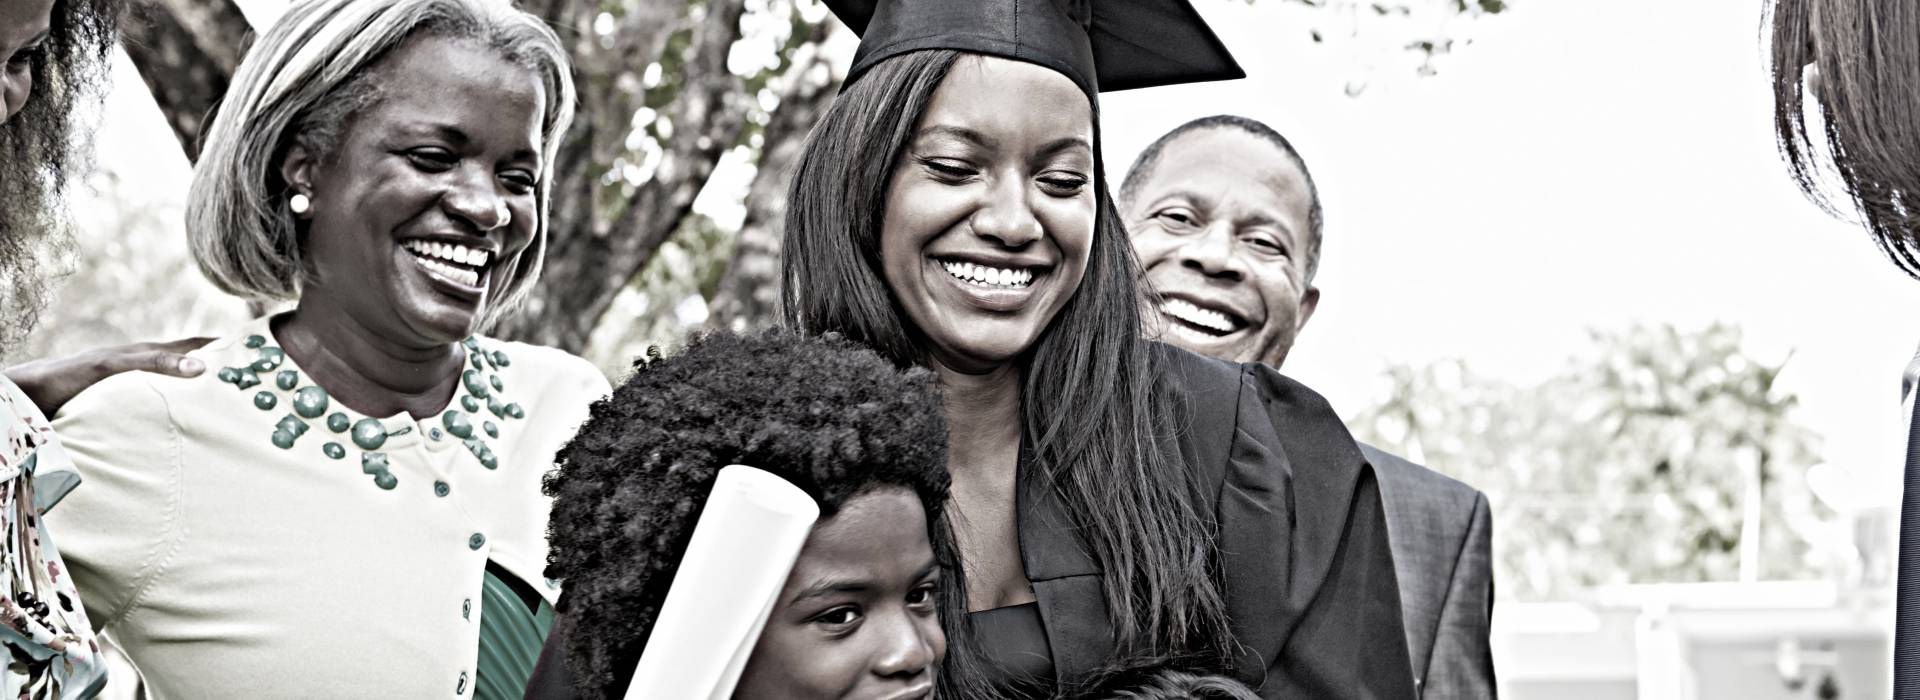 A woman who just graduated college hugs her children while her parents smile behind her.